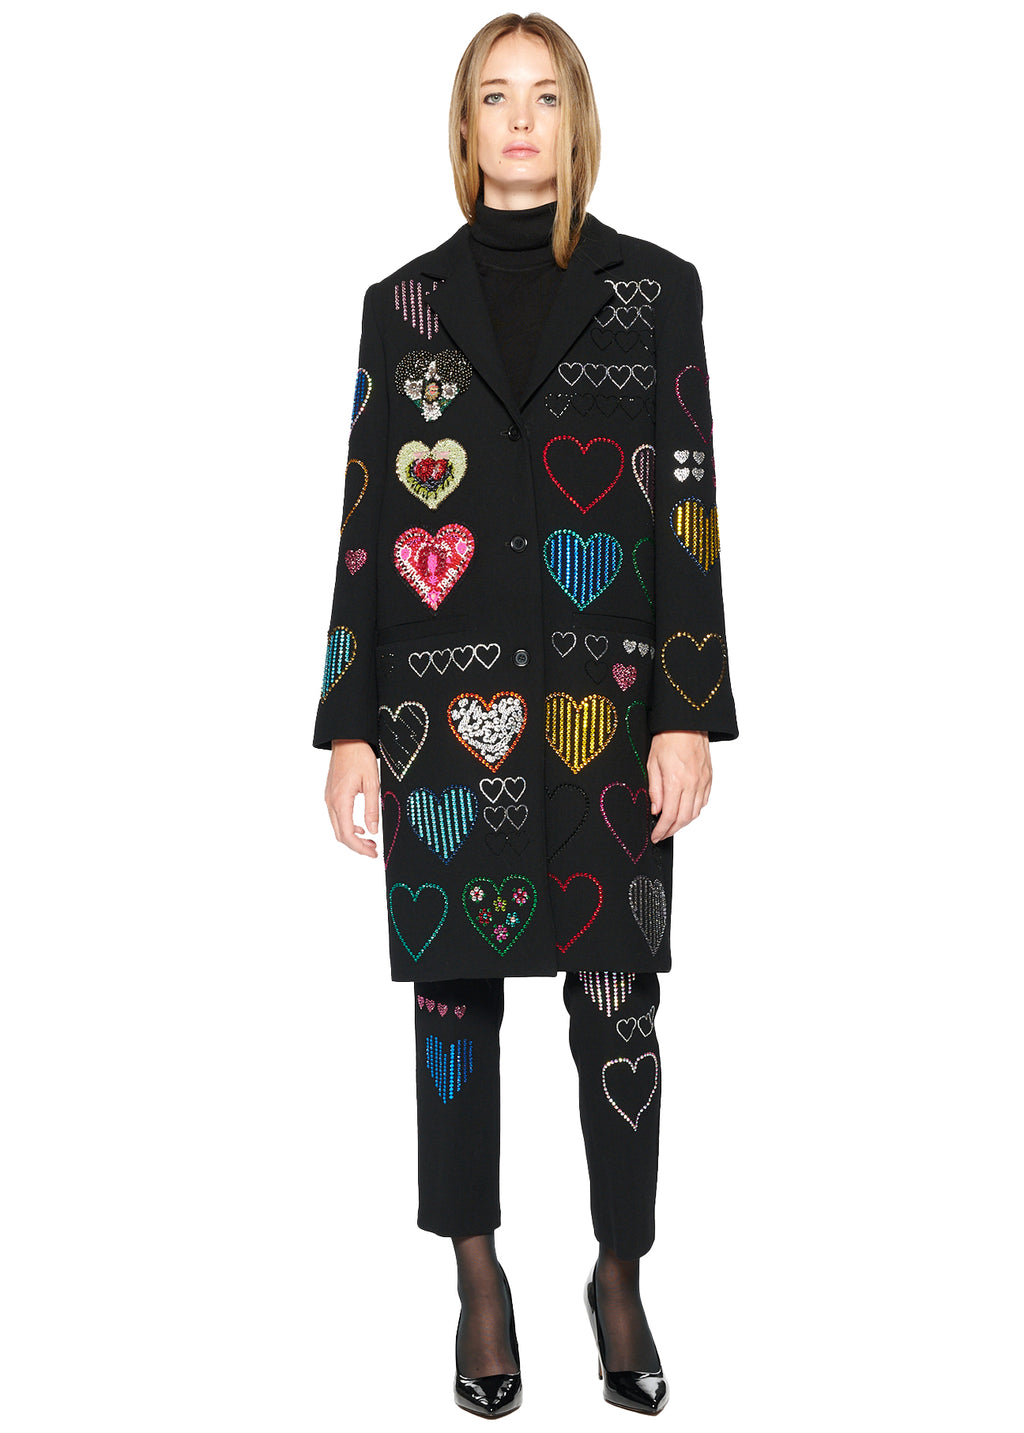 'HEARTS' COAT - Women's Jackets & Coats - Libertine